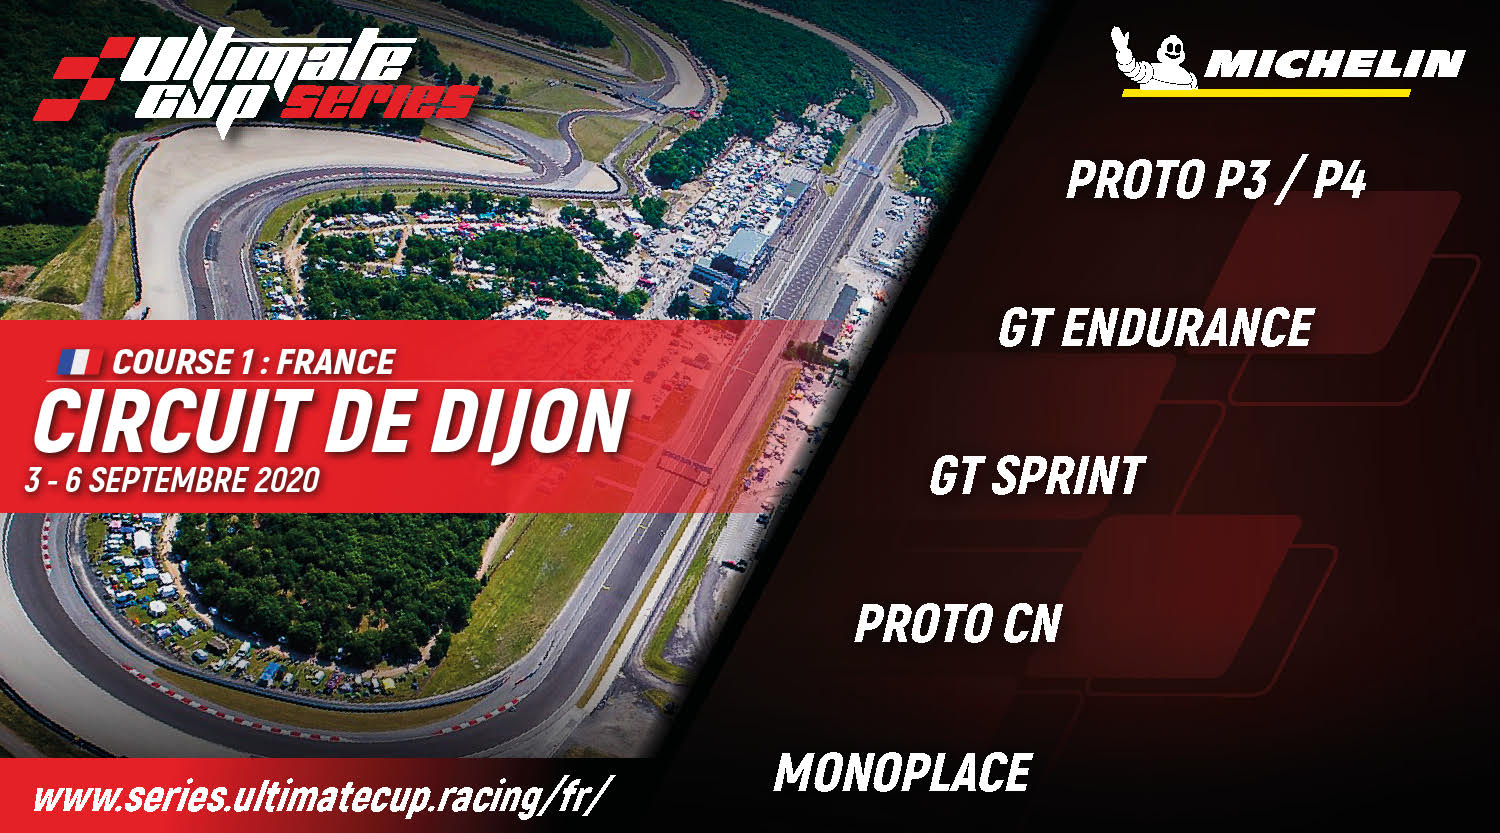 https://series.ultimatecup.racing/tracks/dijon